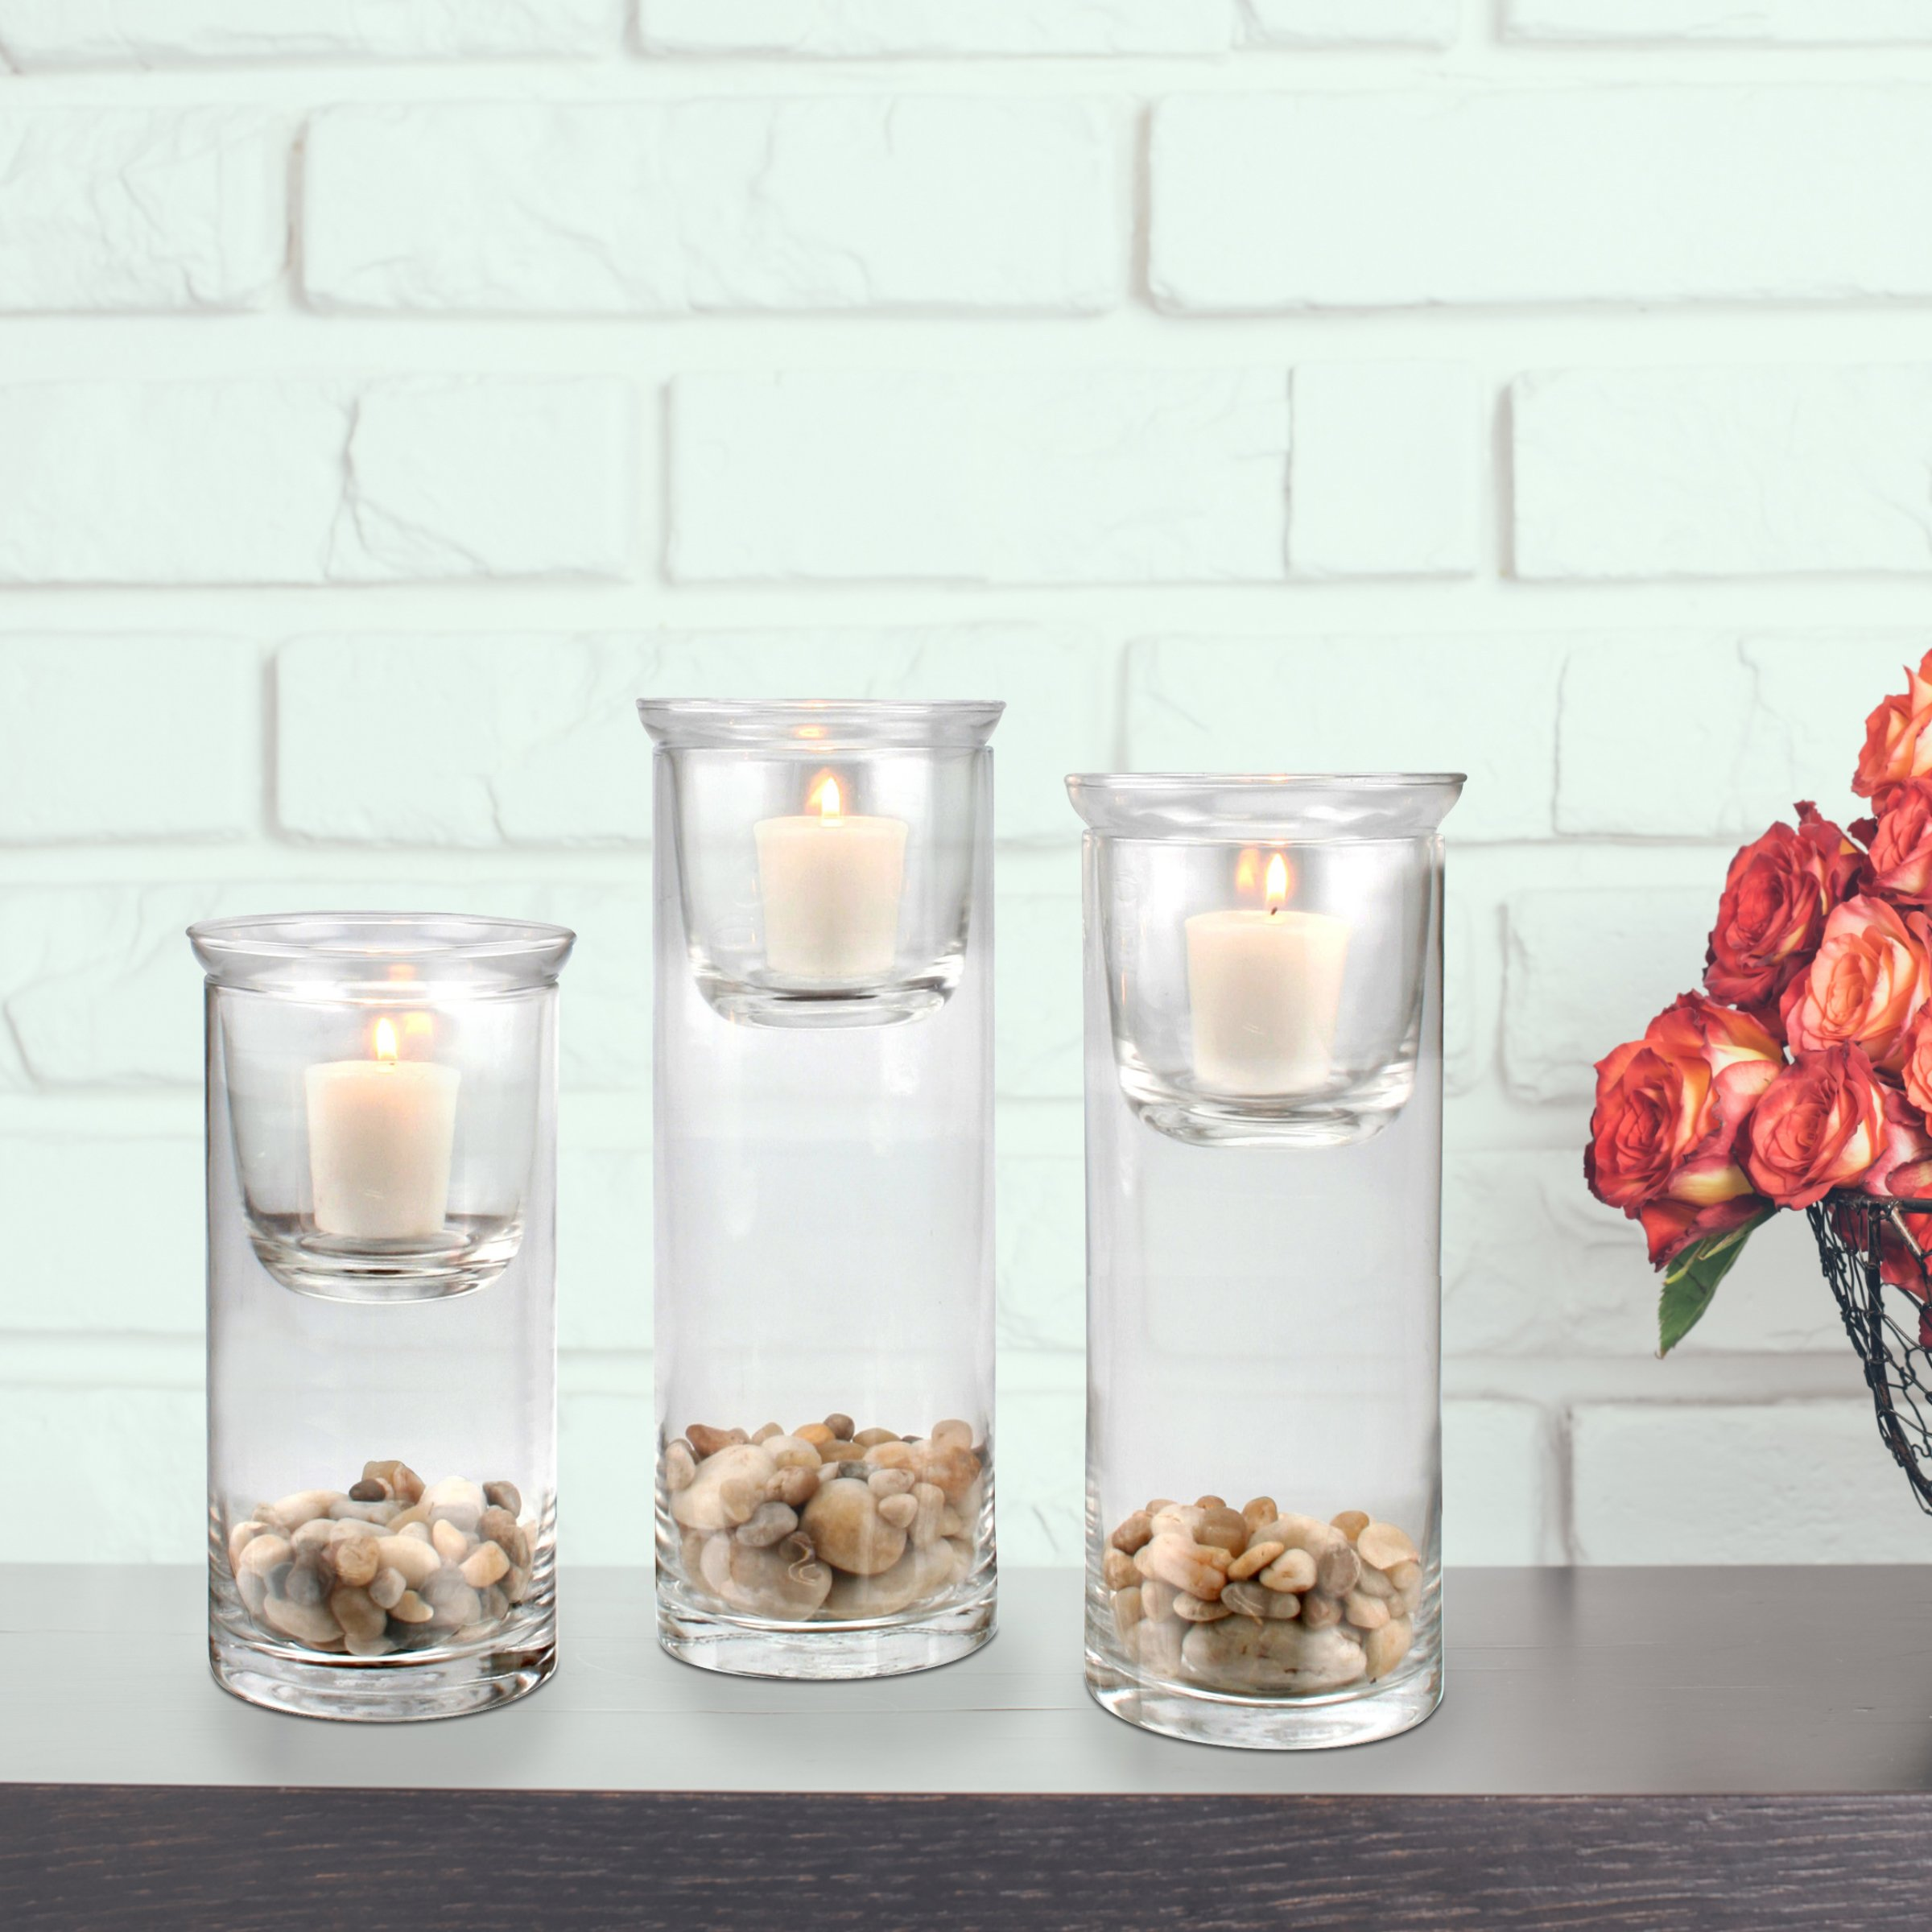 Stonebriar Cylinder Glass Hurricane Set with Removable Votive Candle Holder Inserts, Traditional Home Decor for Dining Room, Living Room, and Bedroom, Decorative Centerpiece by Stonebriar (Image #5)